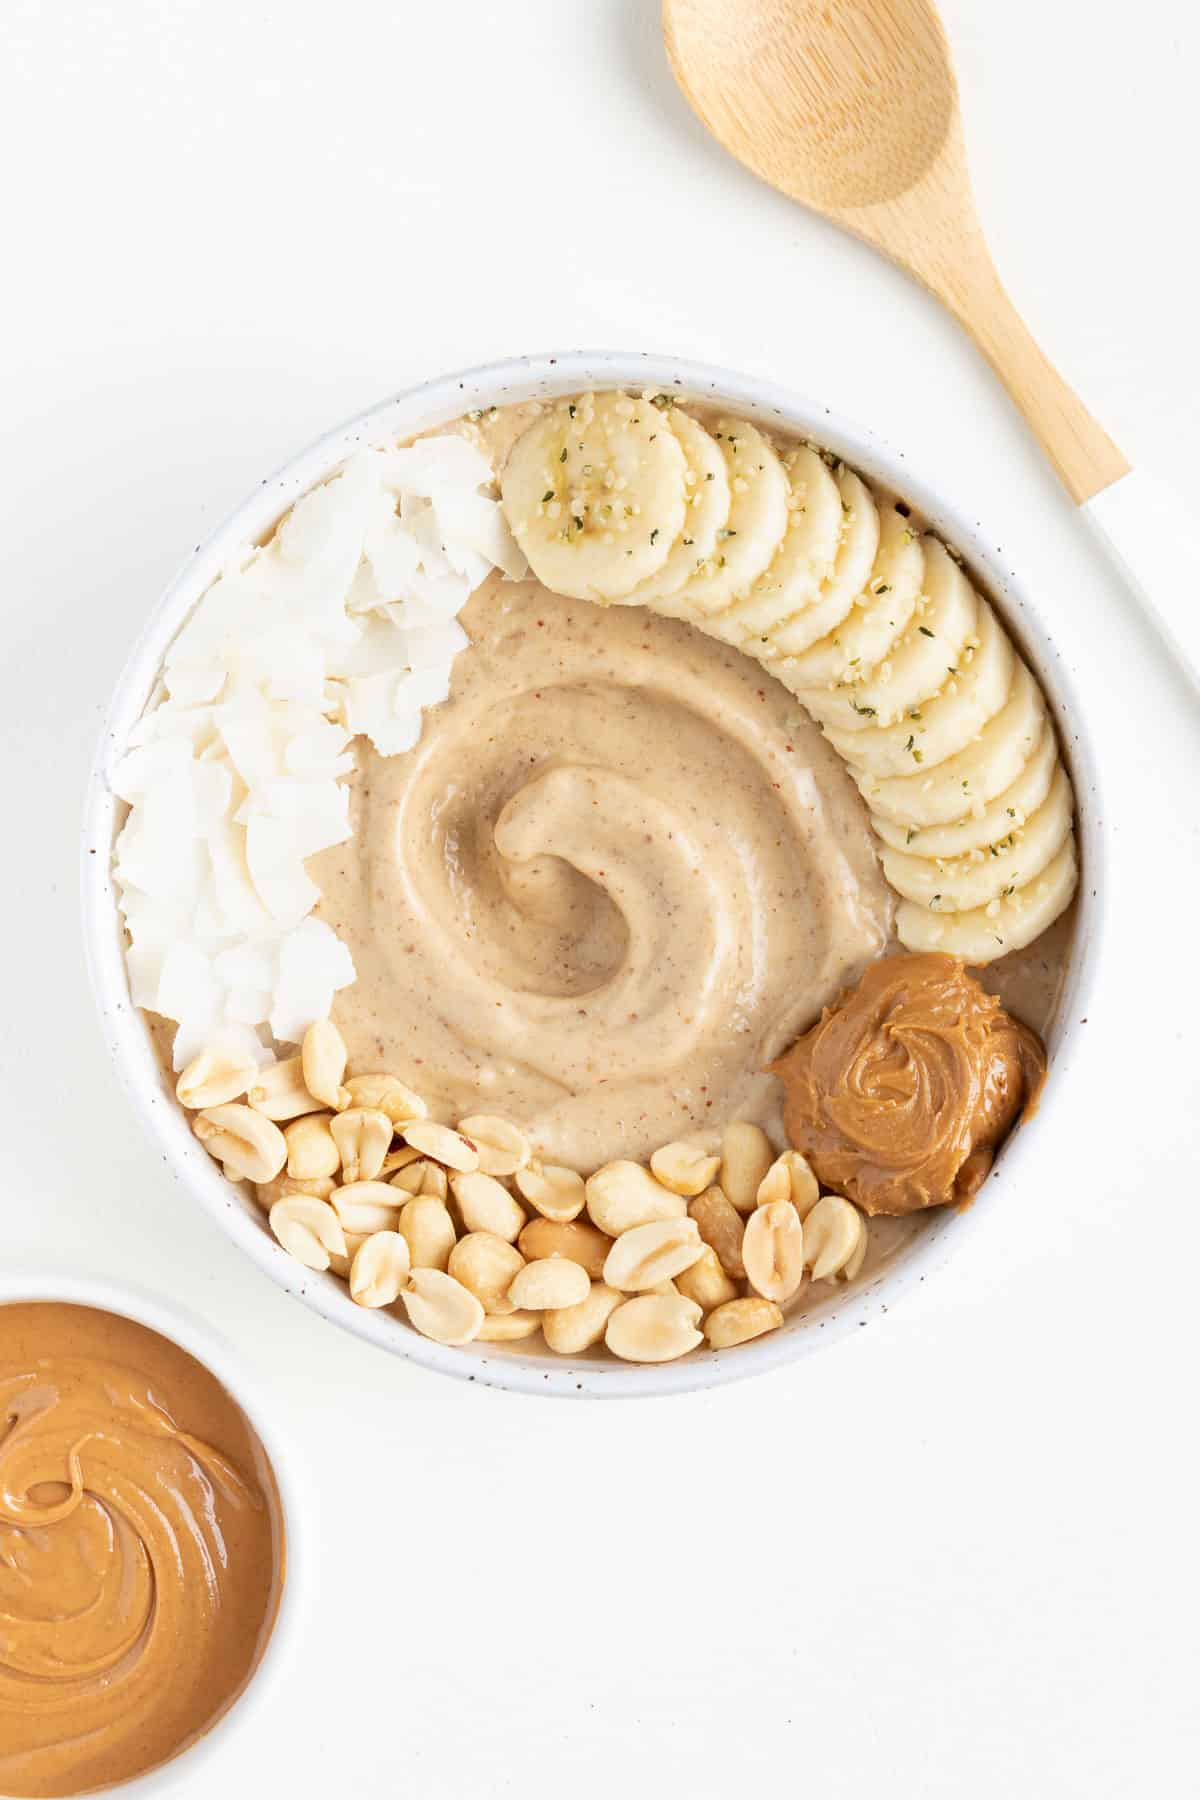 peanut butter banana smoothie bowl next to a small bowl of peanut butter and a wooden spoon